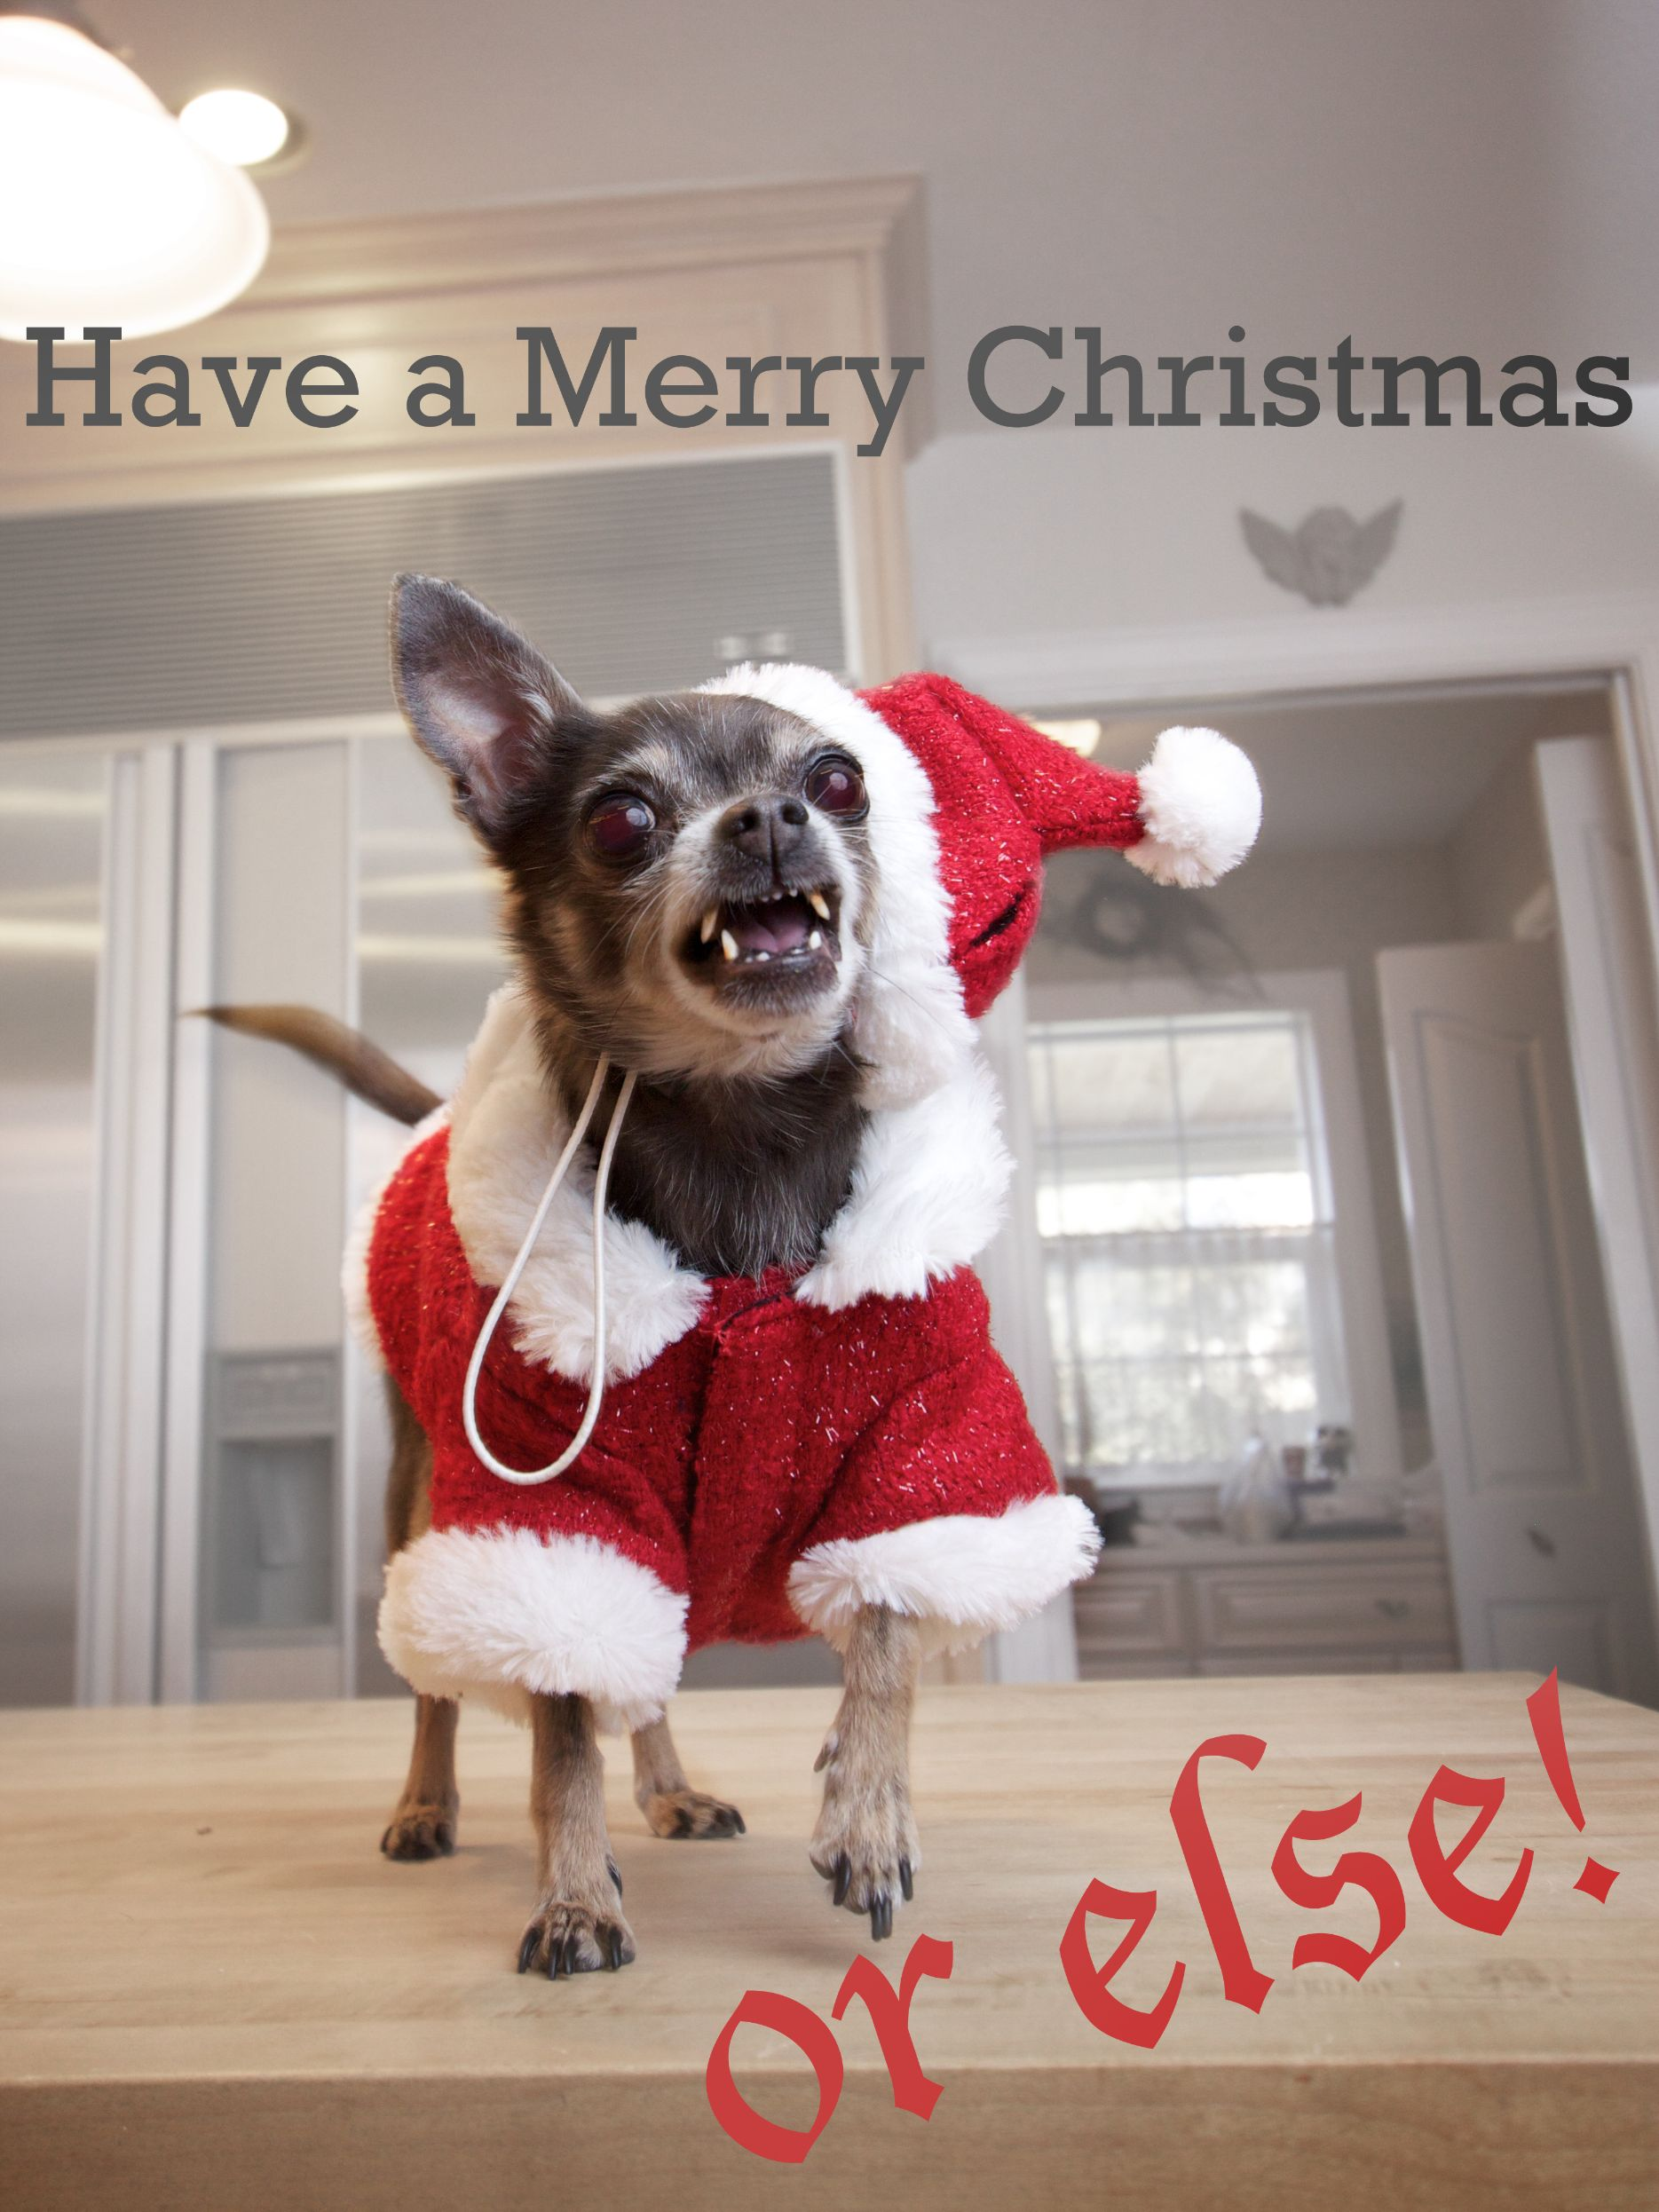 393421_141953138142_satanic-merry-christmas-dog.jpg